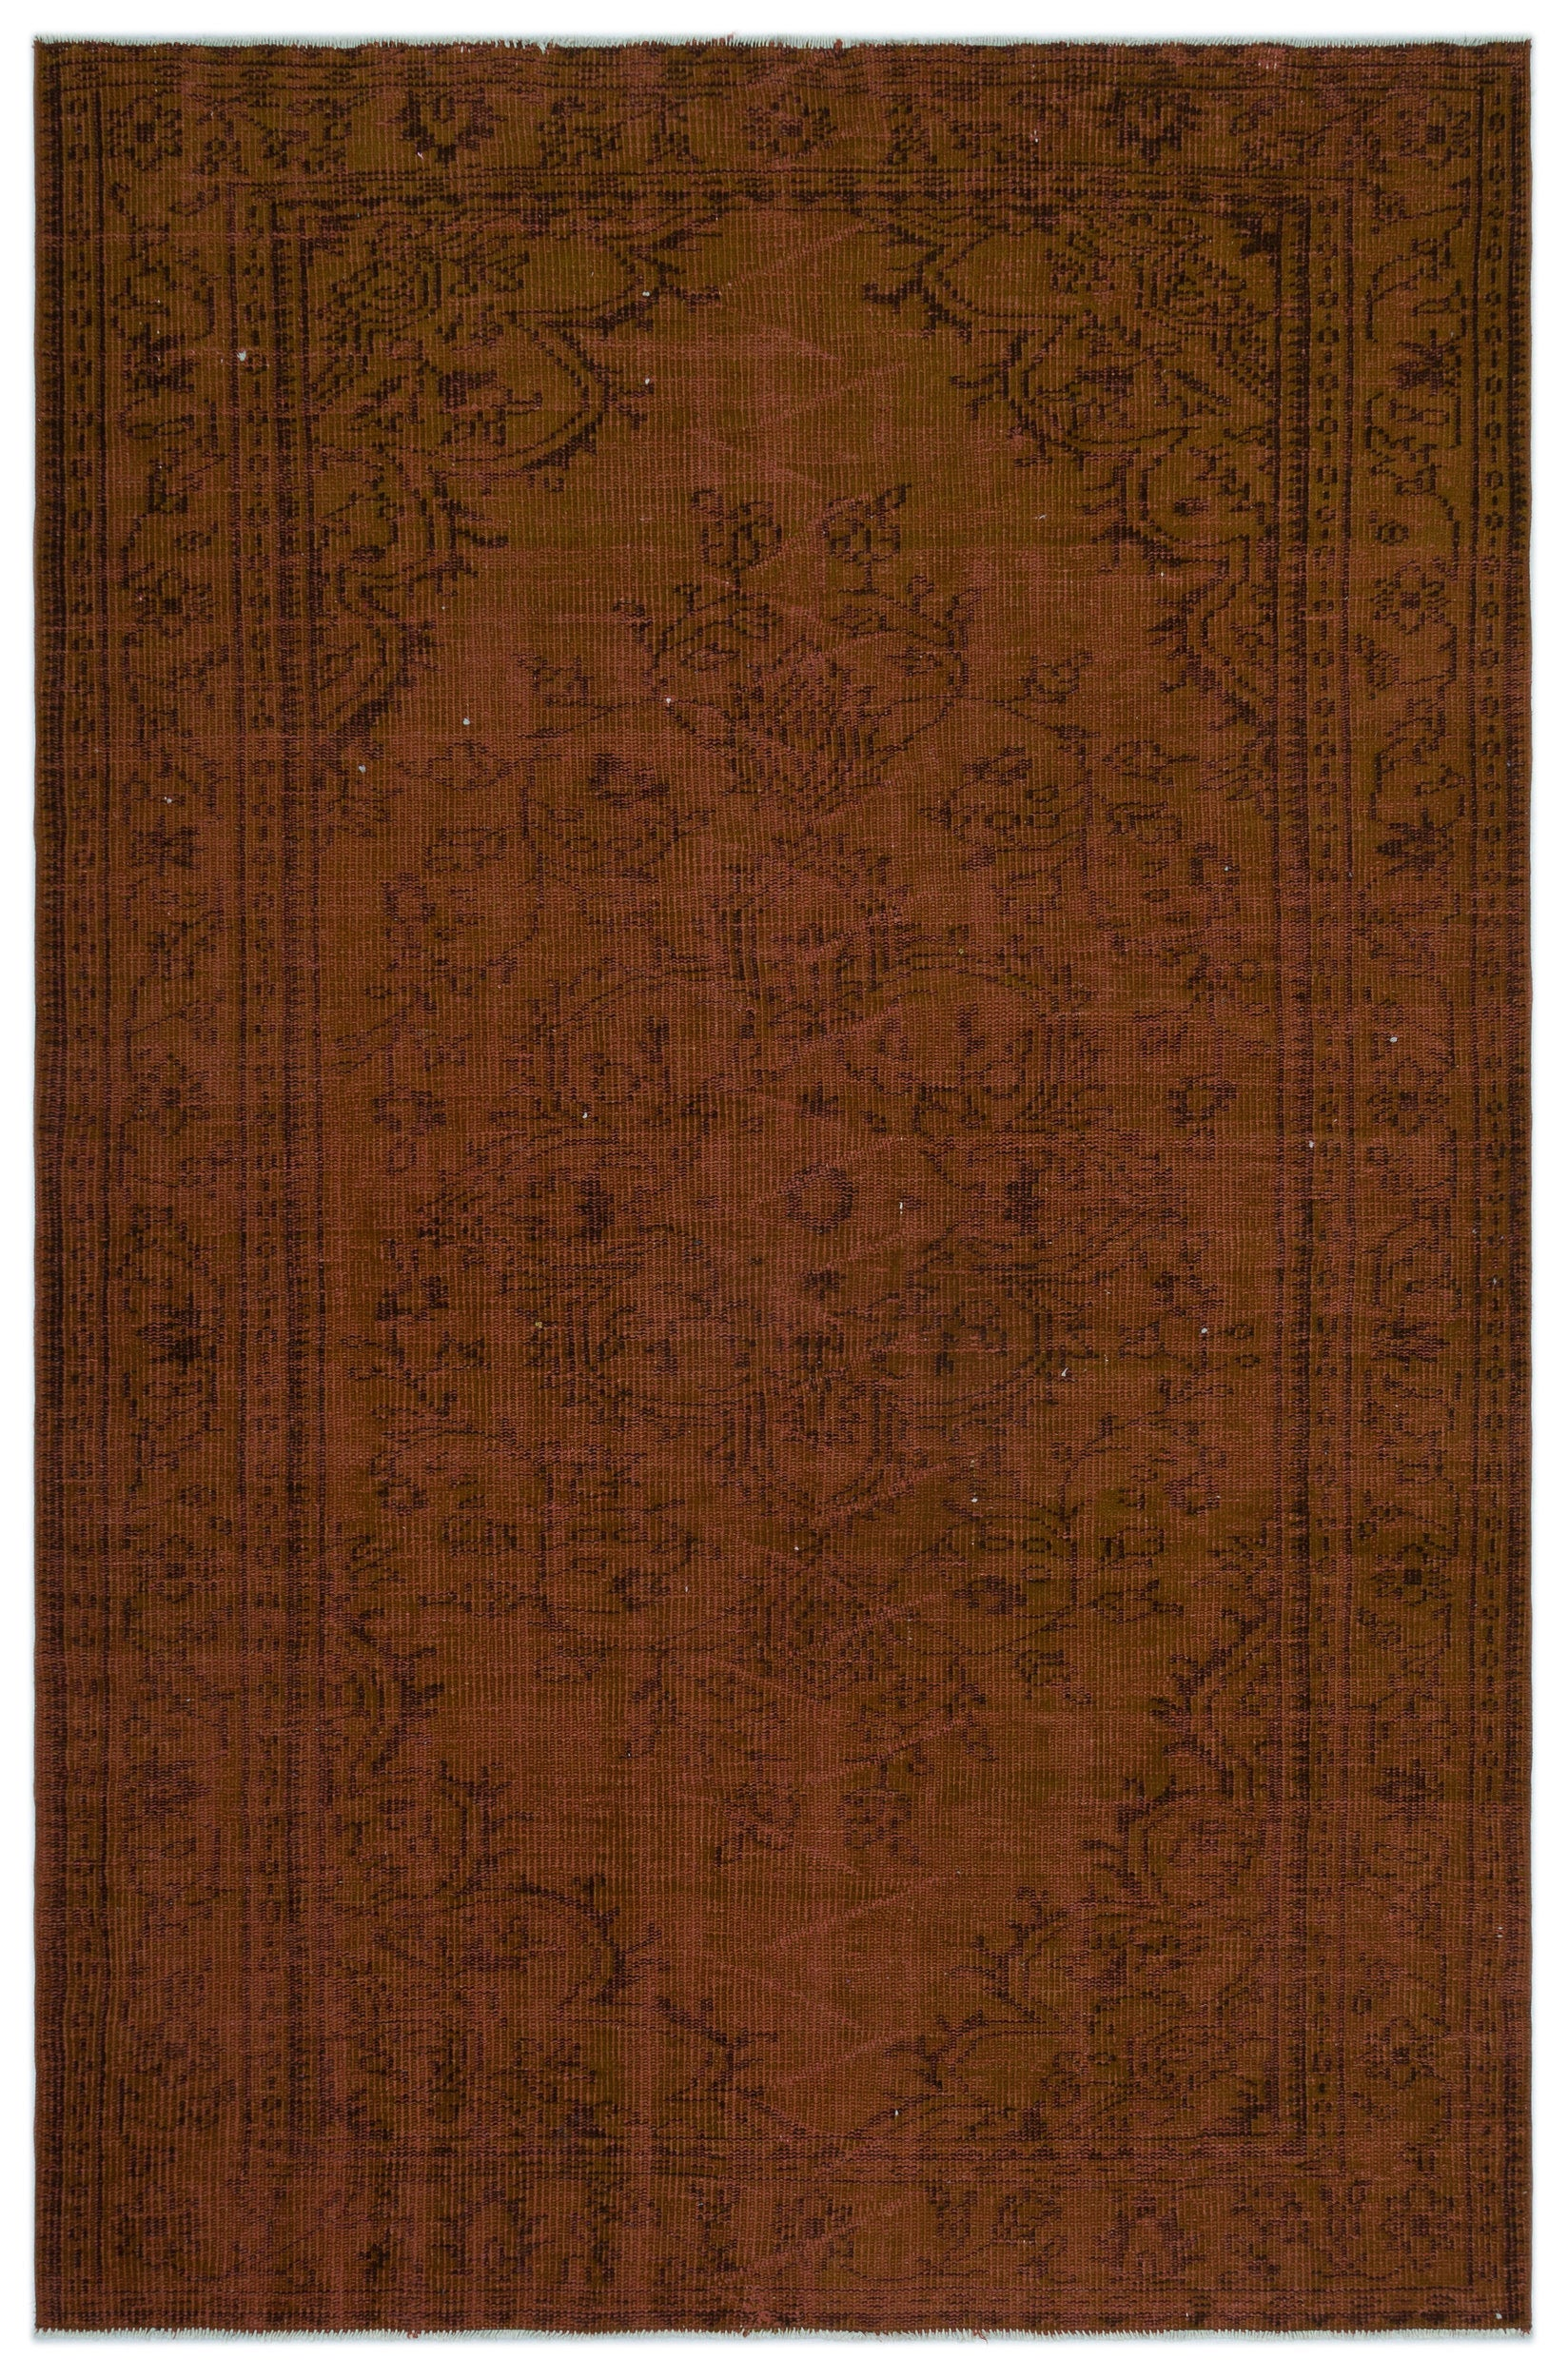 Brown Over Dyed Vintage Rug 5'7'' x 8'6'' ft 171 x 258 cm